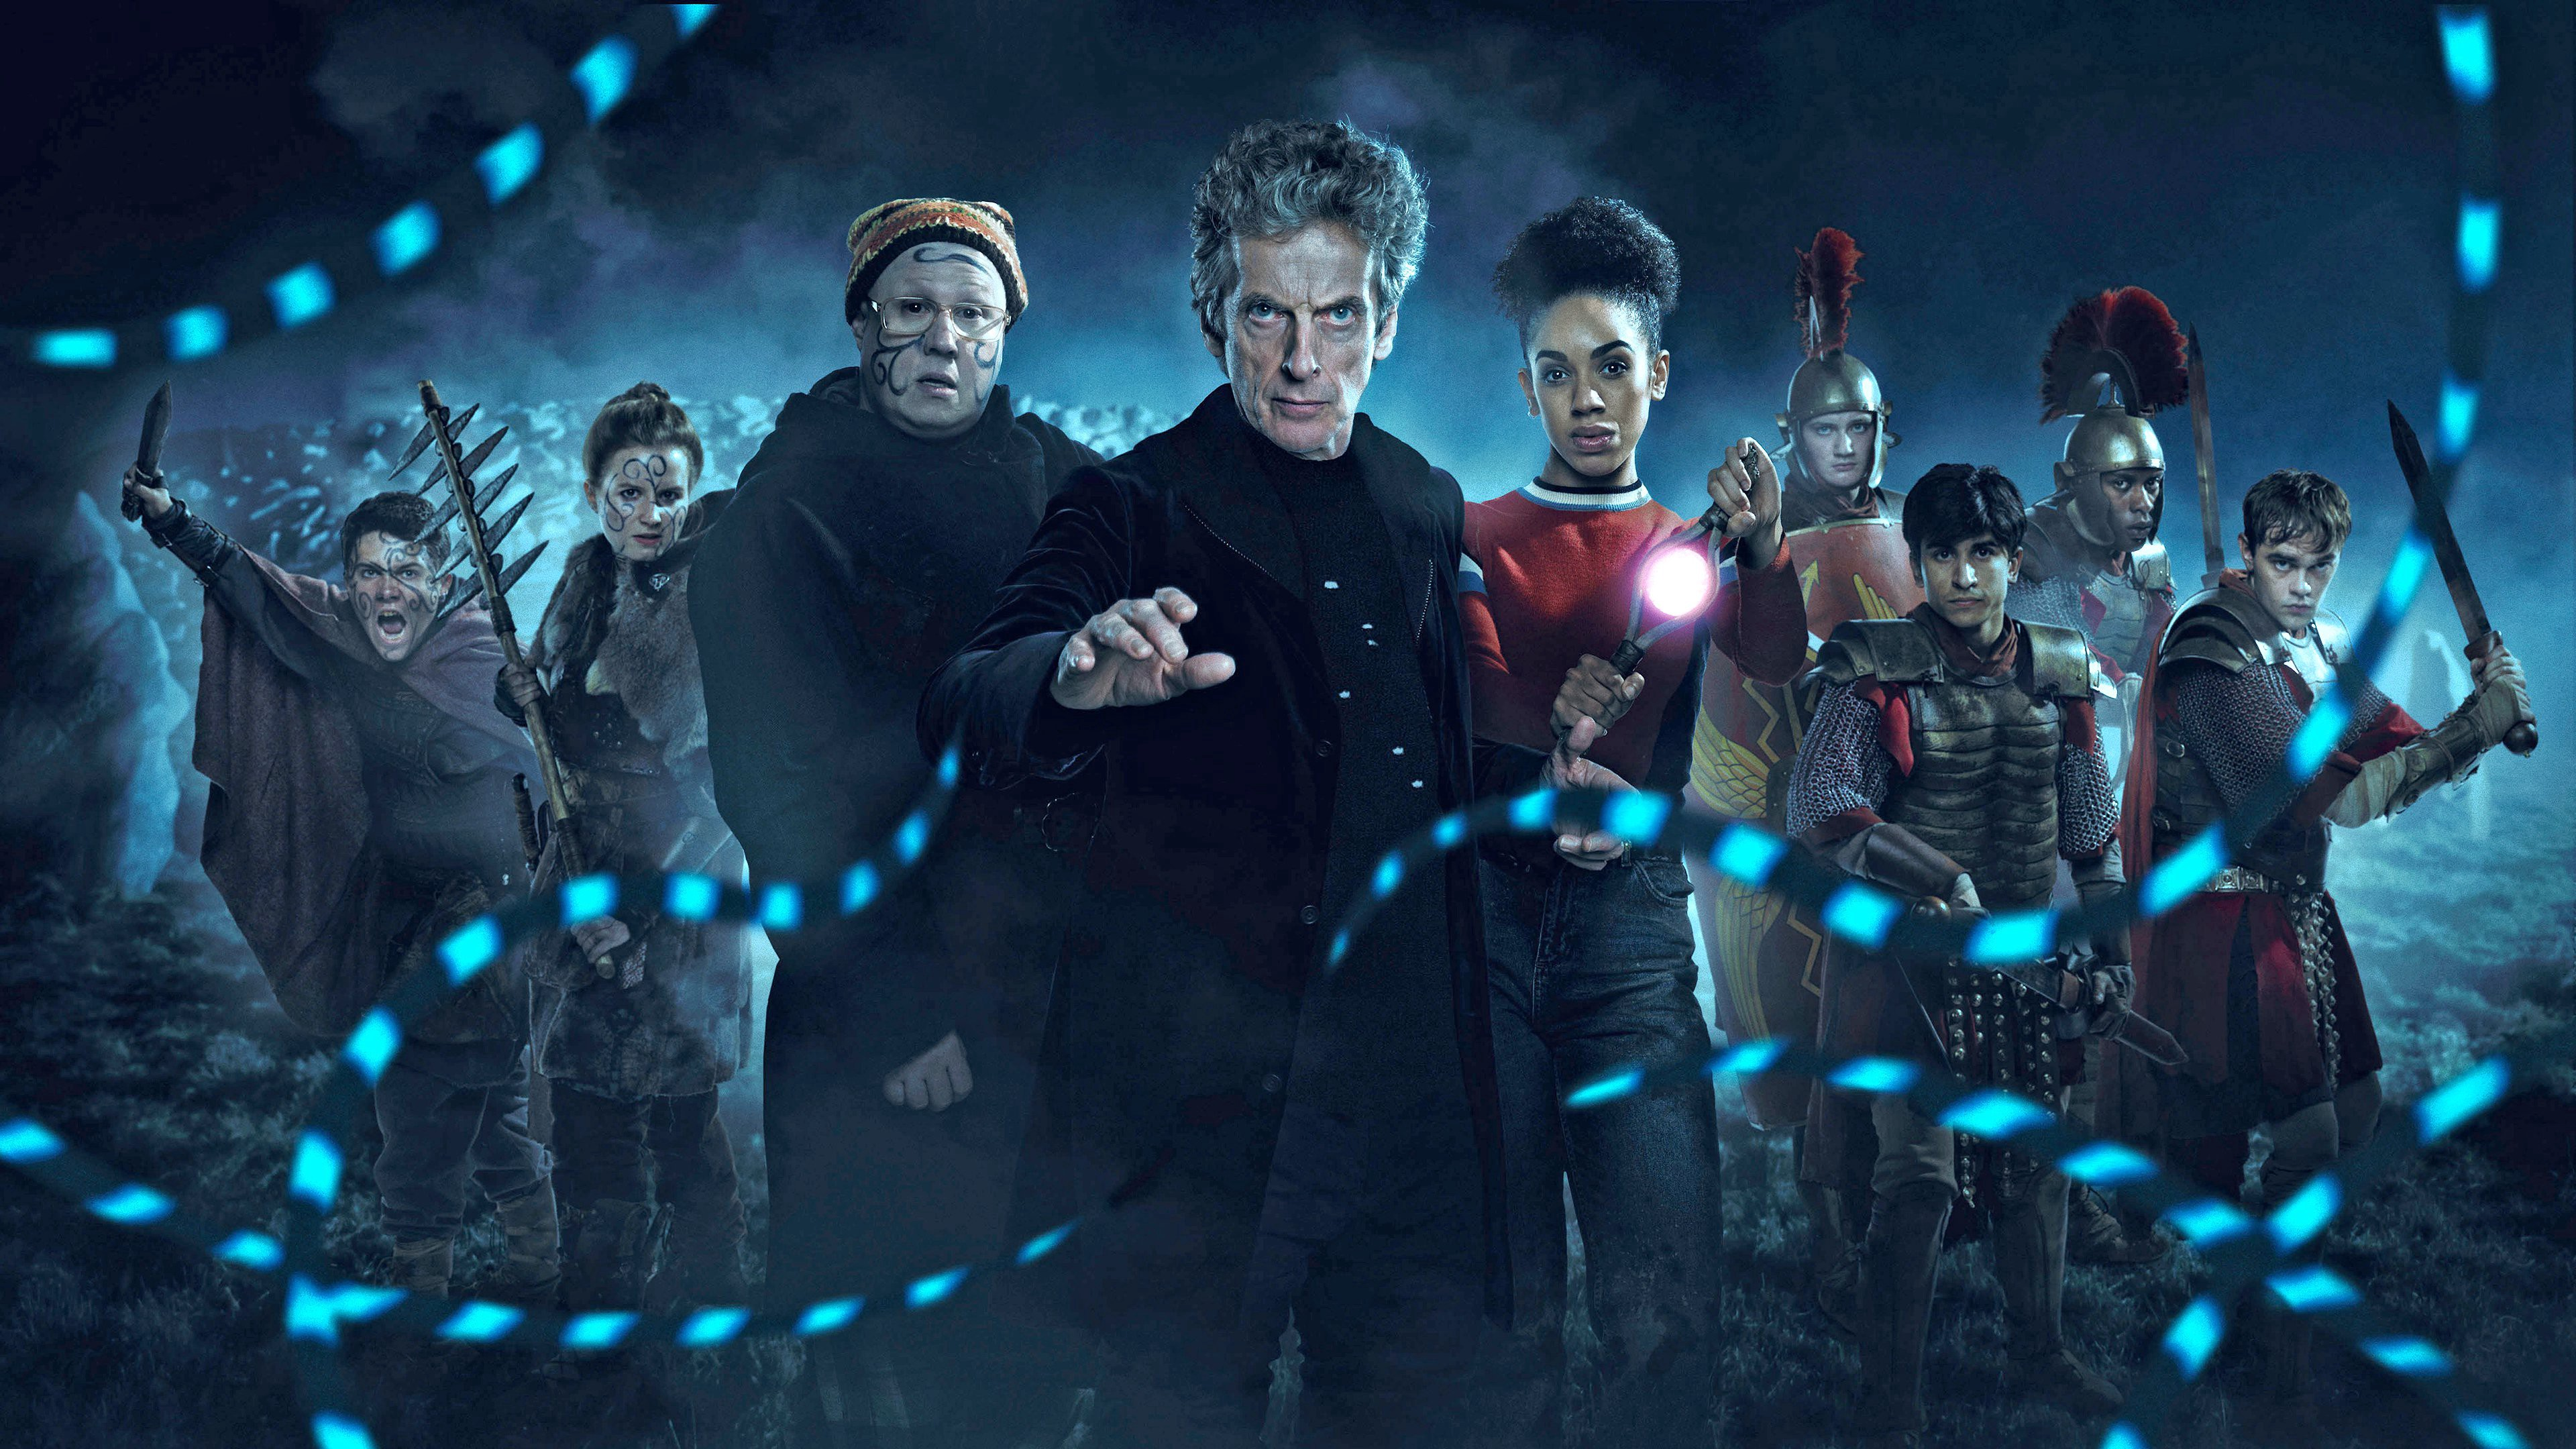 dr who full episodes free online